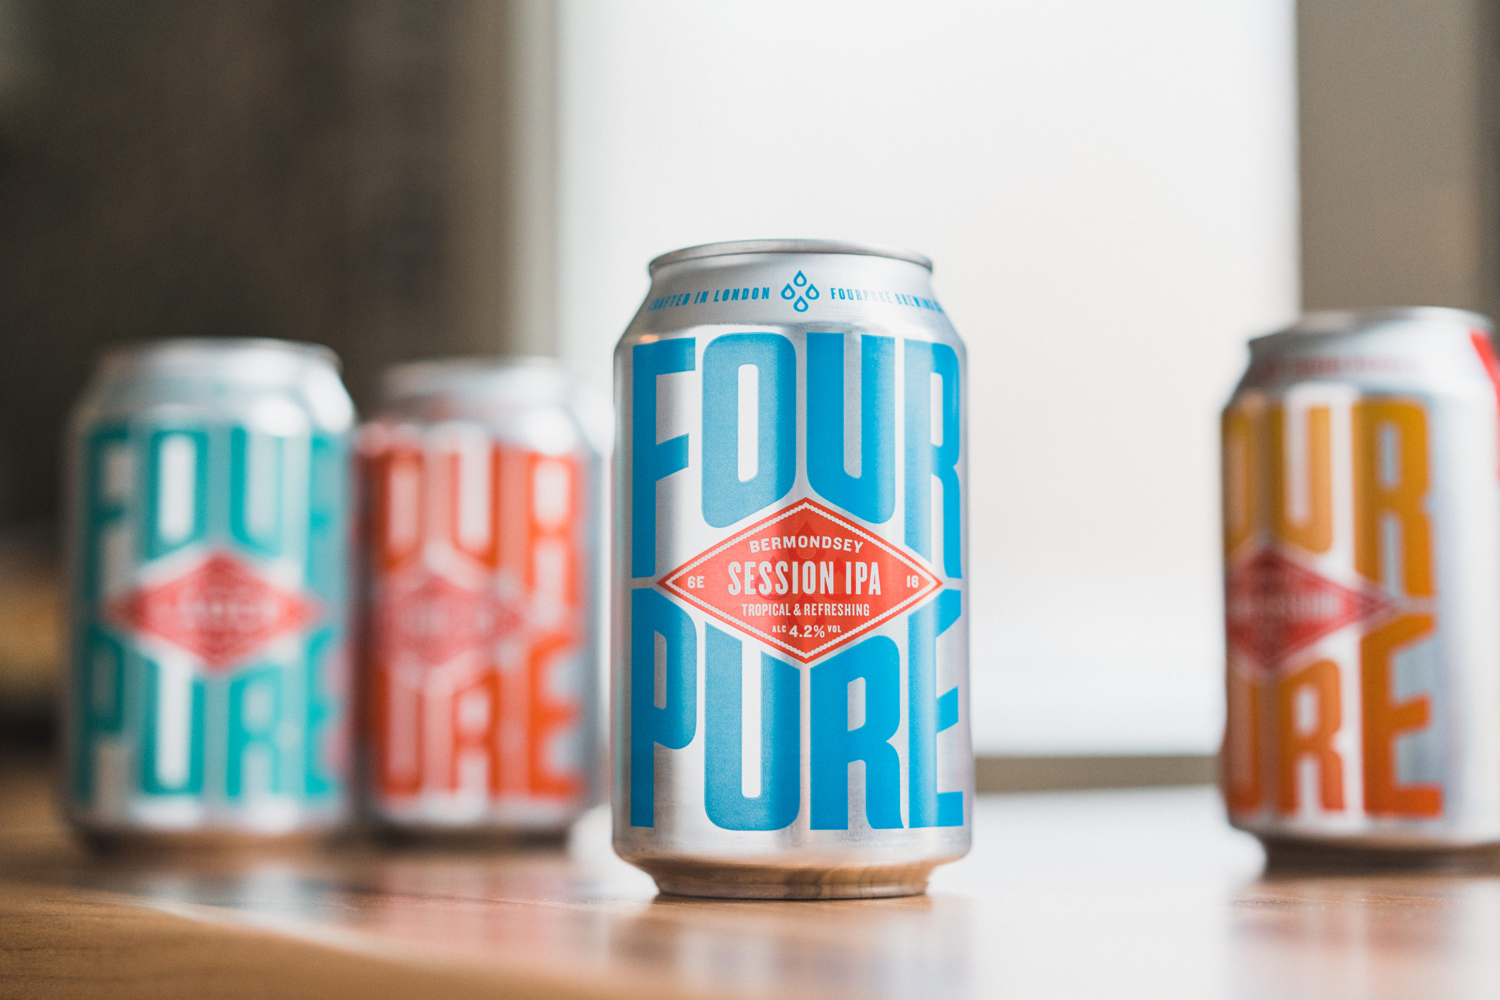 Thirst Craft Returns to Fourpure's Fundamentals to Forge a Refreshingly Simple New Look